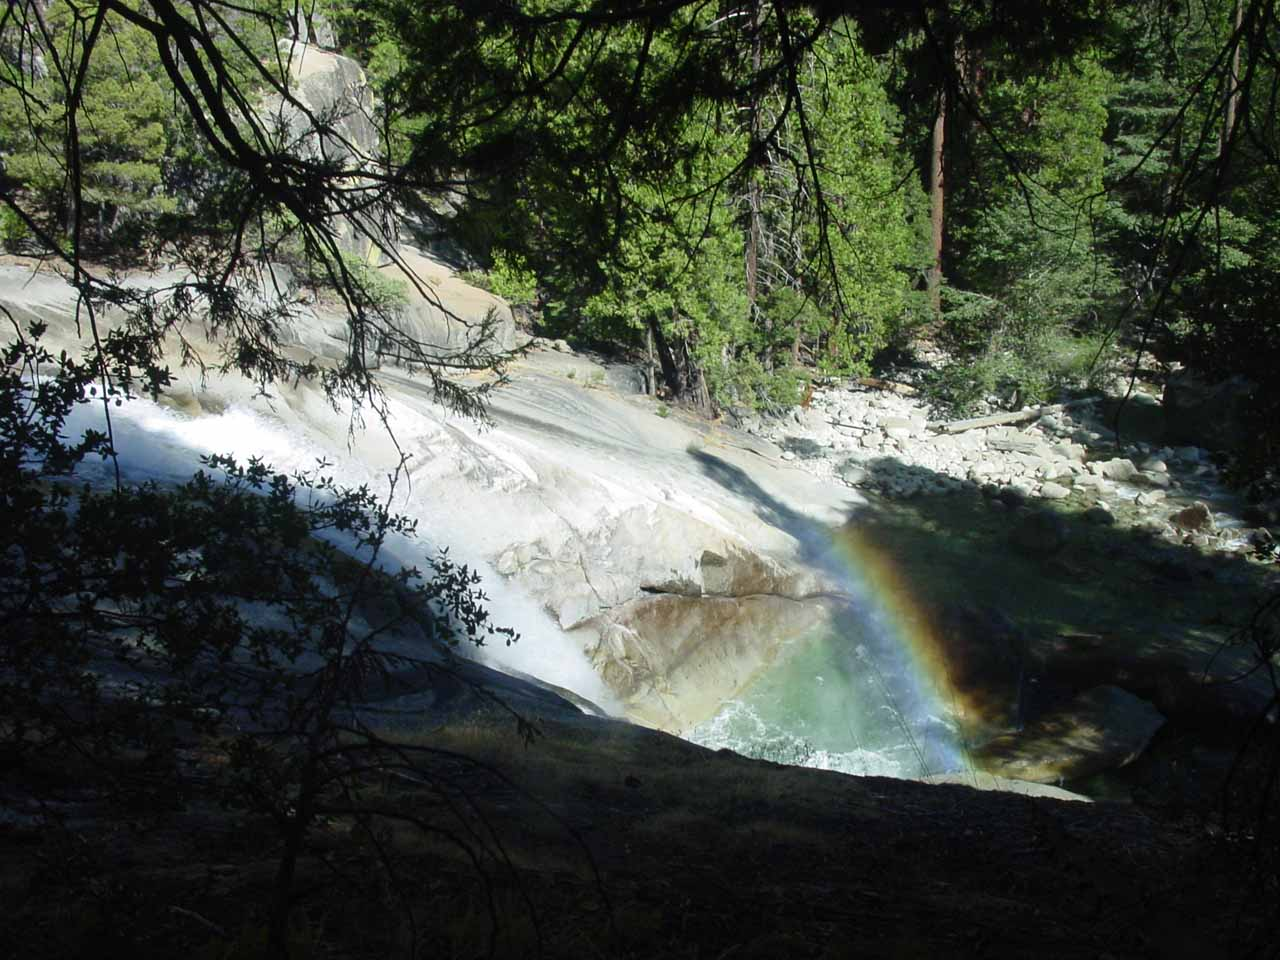 Looking down over the top of Mist Falls towards a rainbow and its pool